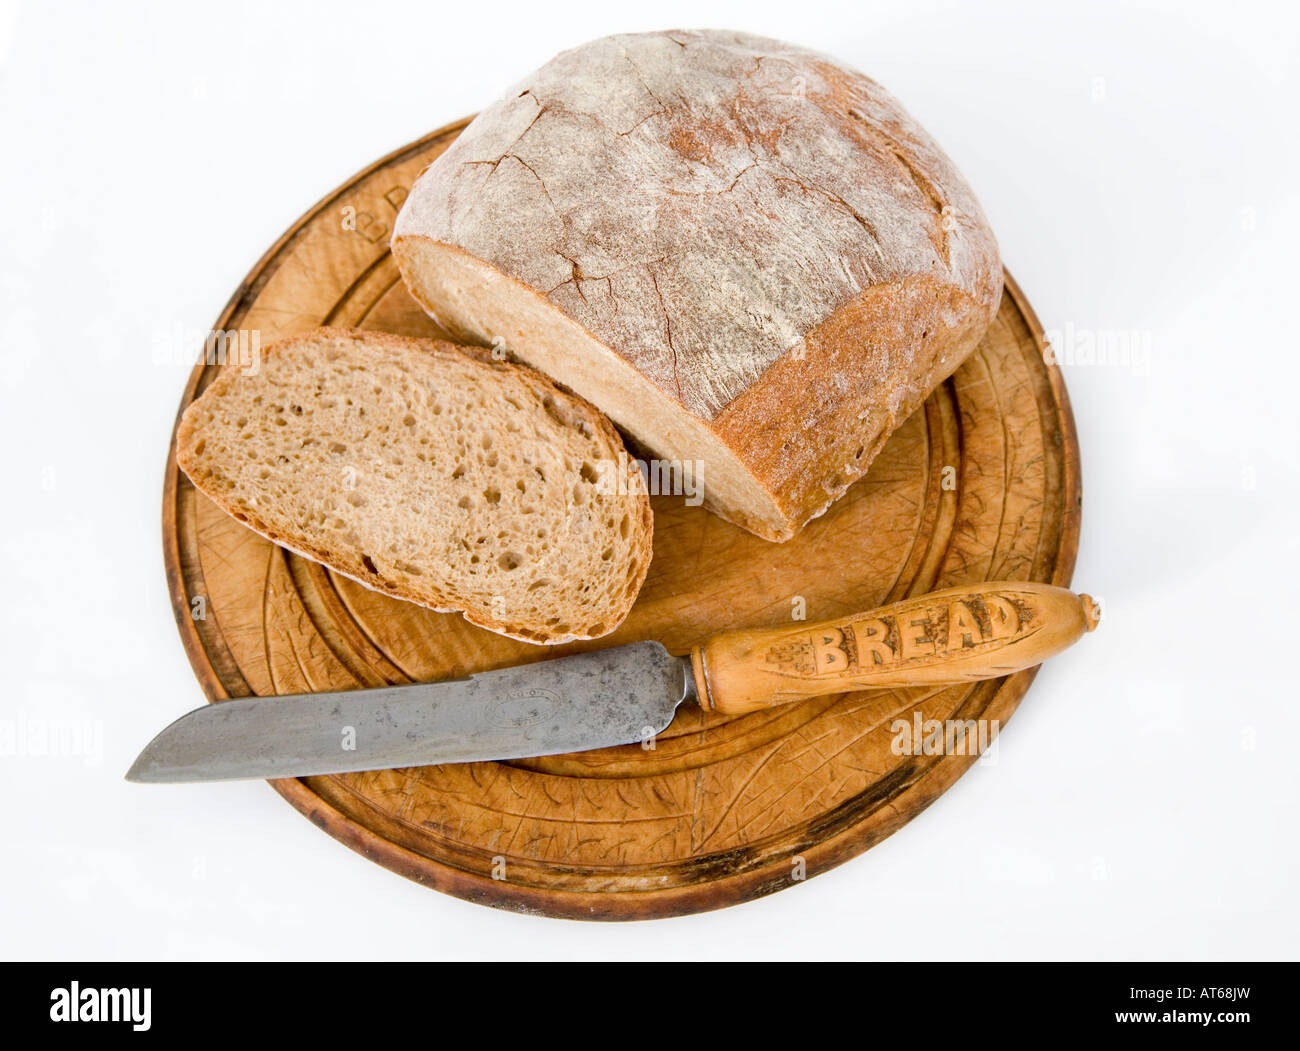 organic wholemeal loaf of bread on a vintage bread board with bread